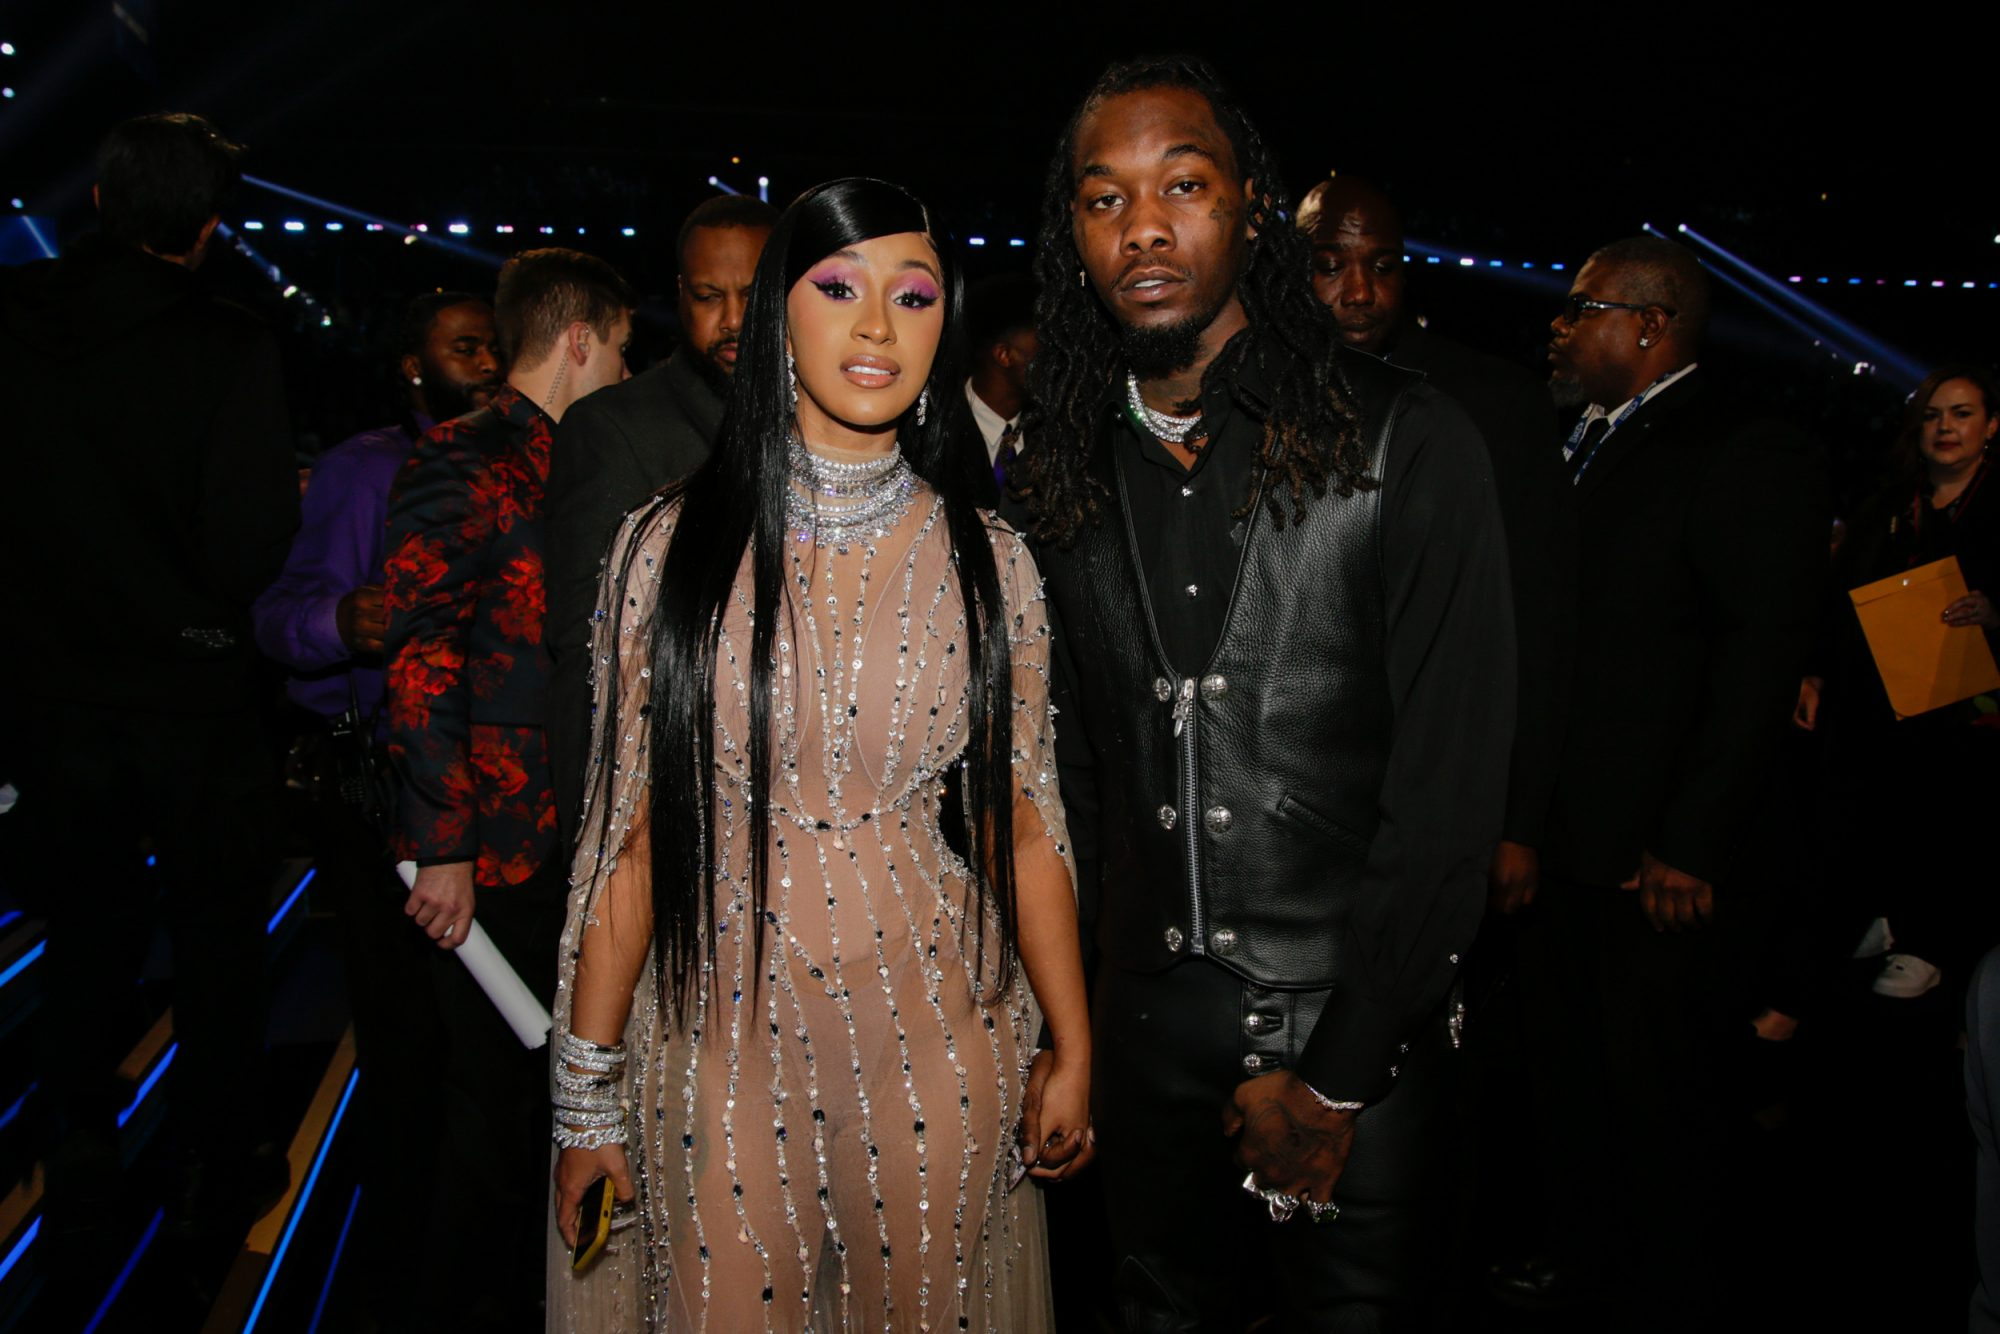 Cardi B Celebrated Her 28th Birthday in Vegas With Offset